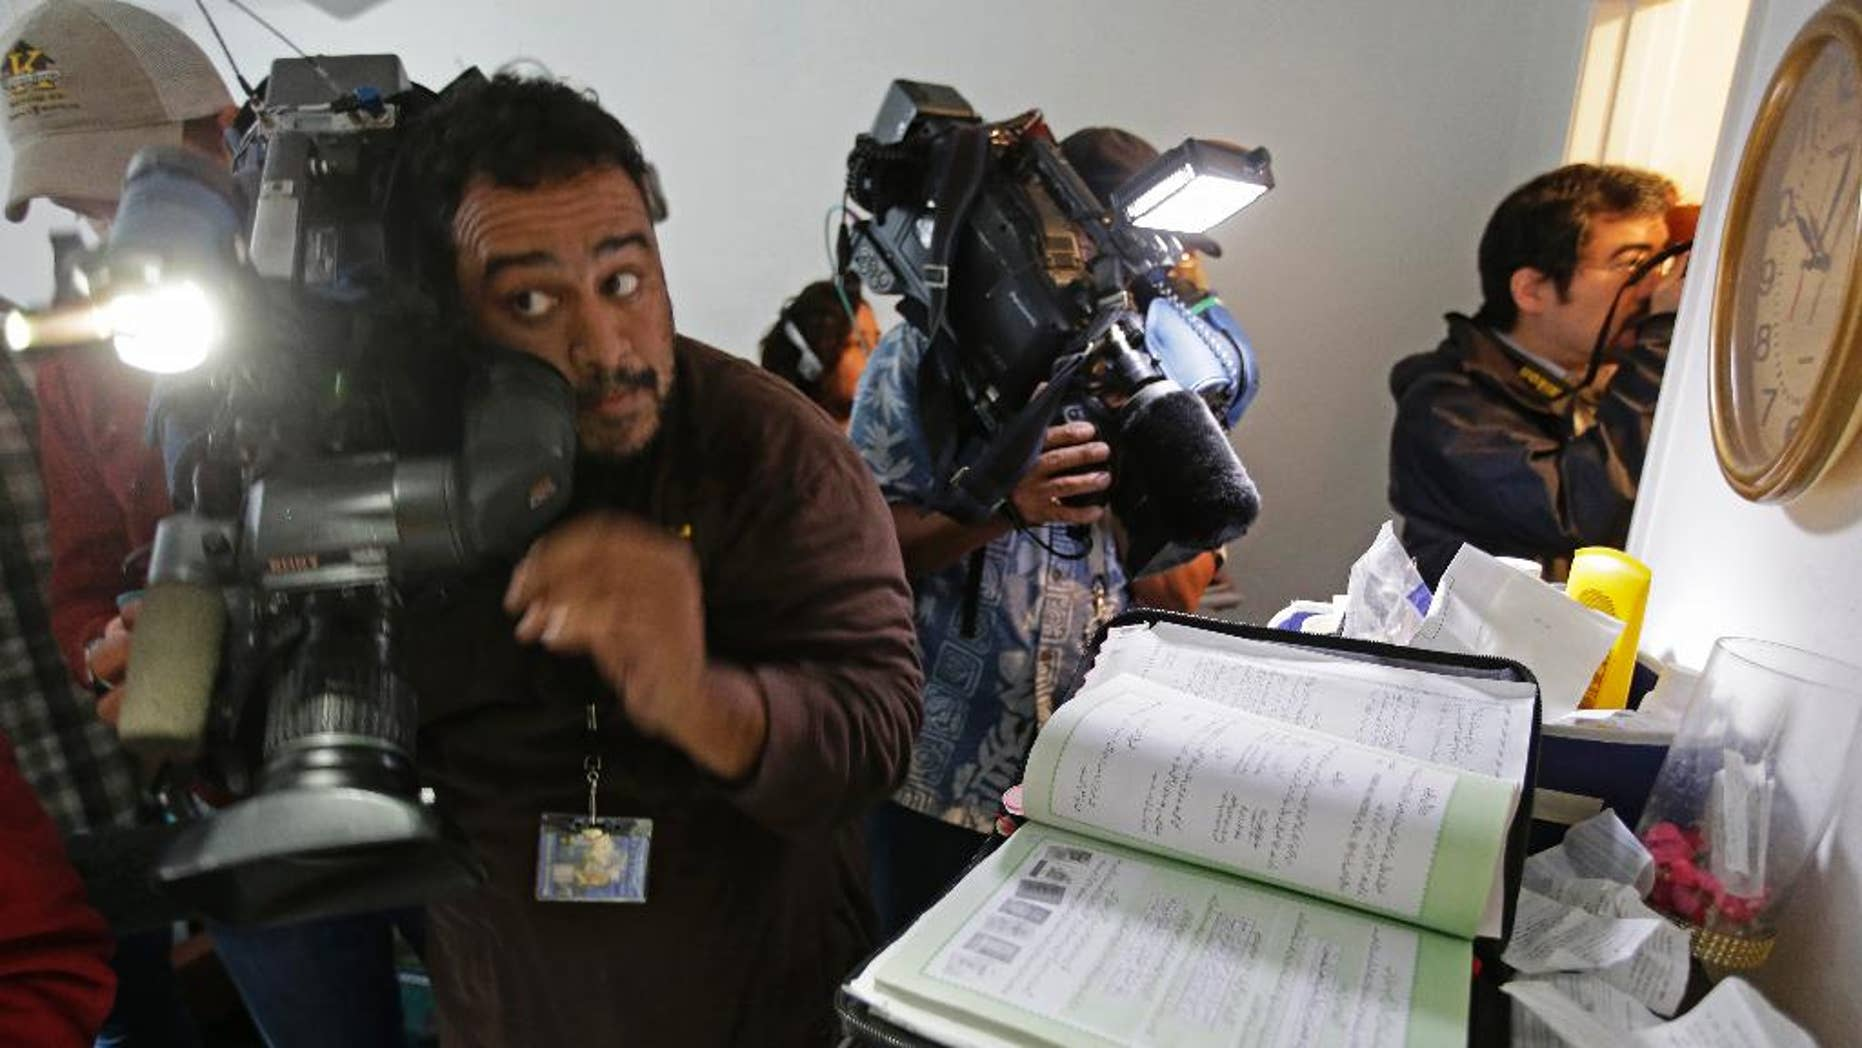 Members of the media crowd into the apartment bedroom of San Bernardino shooting suspects Syed Farook and his wife, Tashfeen Malik, in Redlands, Calif., Friday, Dec. 4, 2015, after the building landlord invited journalists into the townhouse. A book containing passages from the Quran is seen at right.  (AP Photo/Chris Carlson)